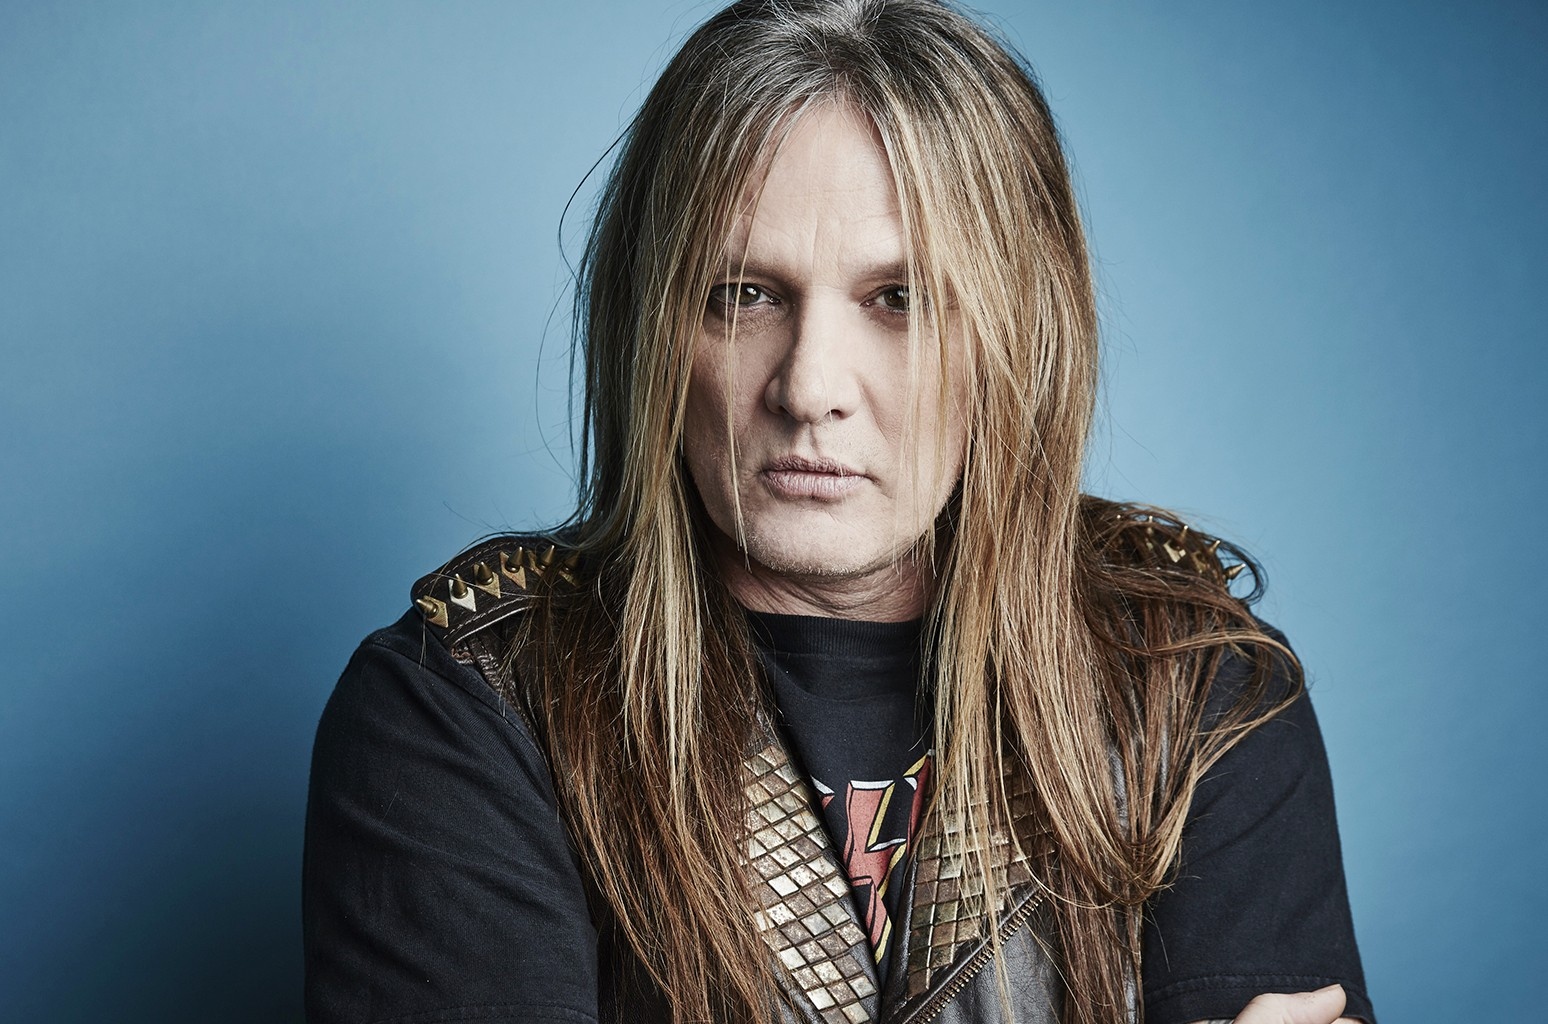 Sebastian Bach photographed in the Getty Images Portrait Studio at the 2016 Winter Television Critics Association press tour at the Langham Hotel on Jan. 8, 2016 in Pasadena, Calif.